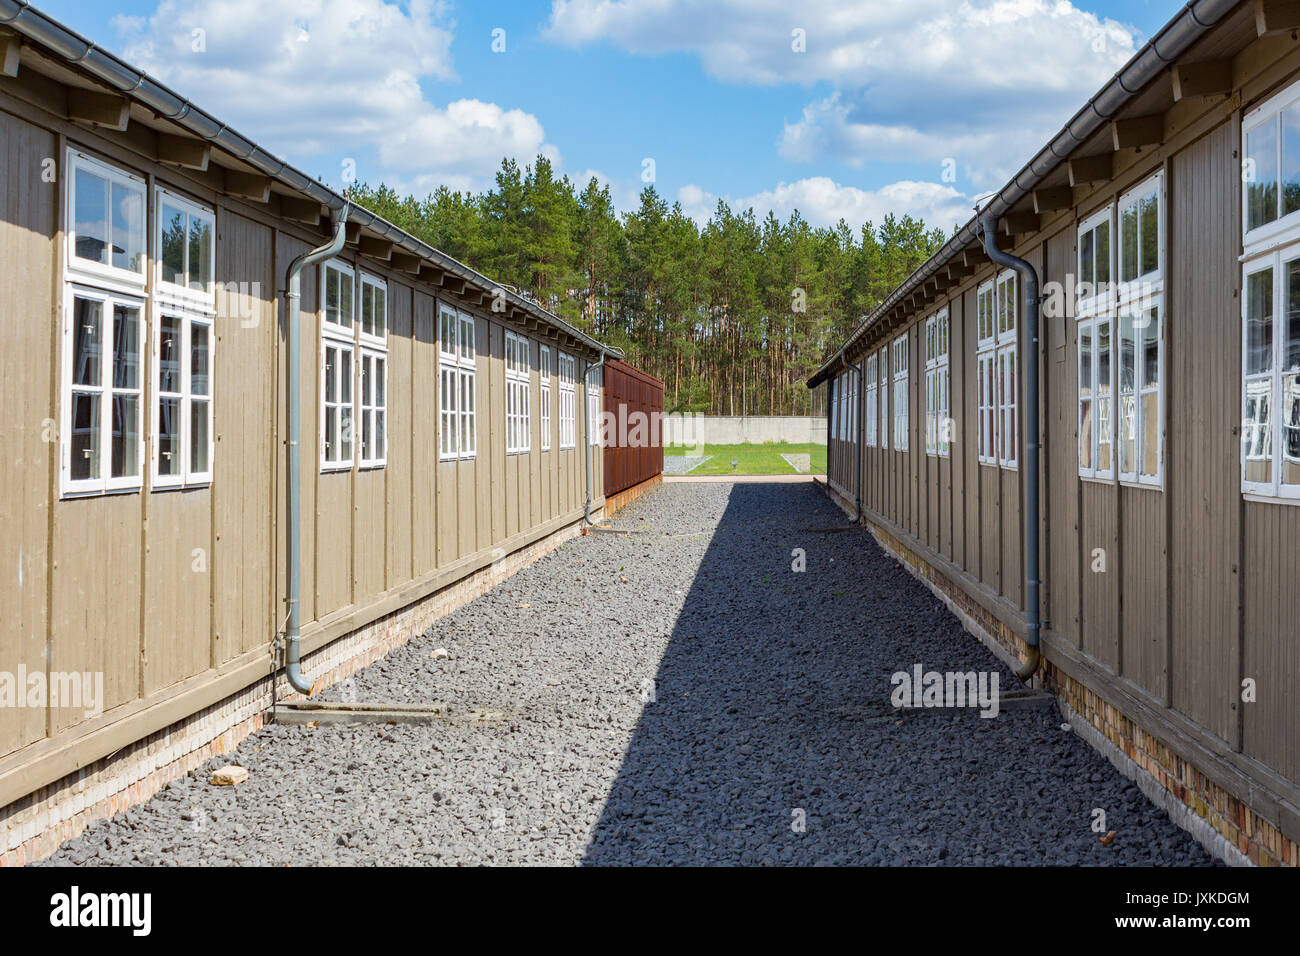 Barrack buildings at Sachsenhausen concentration camp memorial site - Stock Image